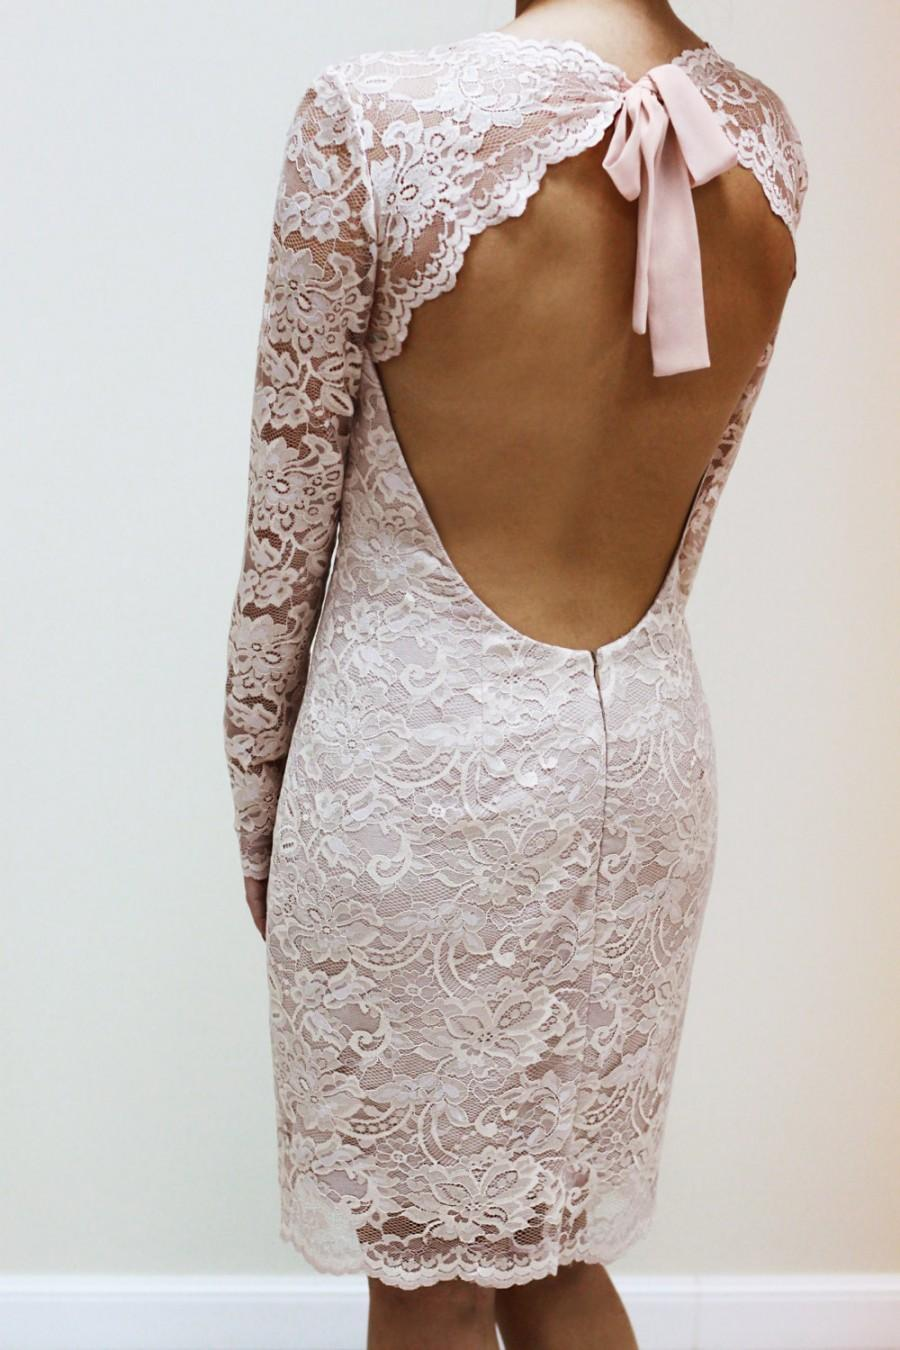 Boda - Champagne Lace Dress with Keyhole Back, Custom Made Wedding Dress, V neck LAce Dress with Sleeves